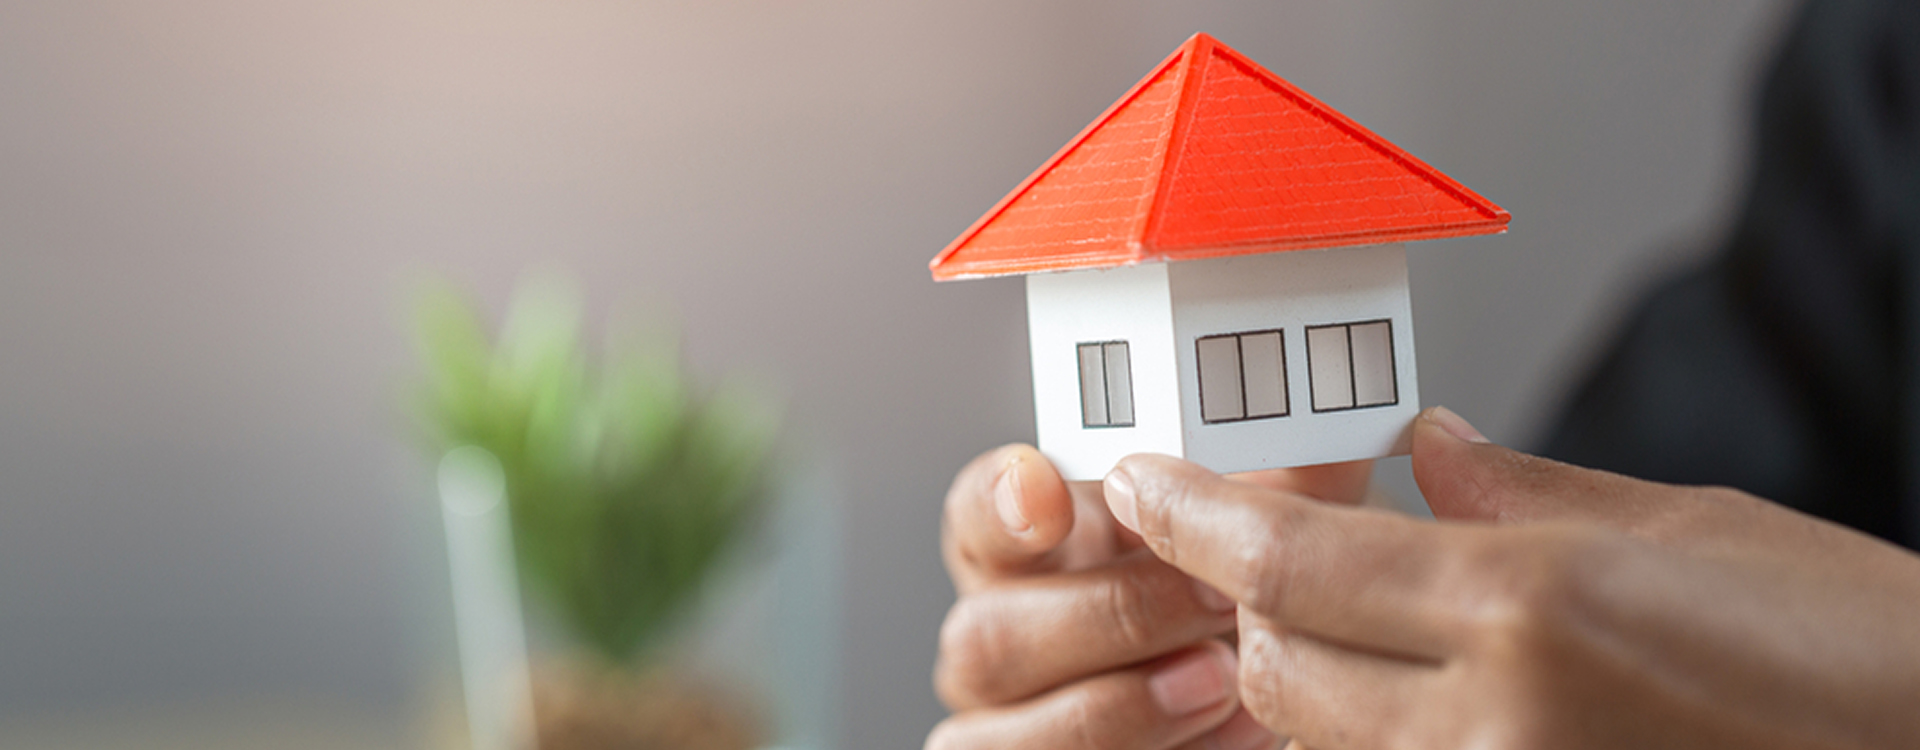 Why getting rentals can help you?